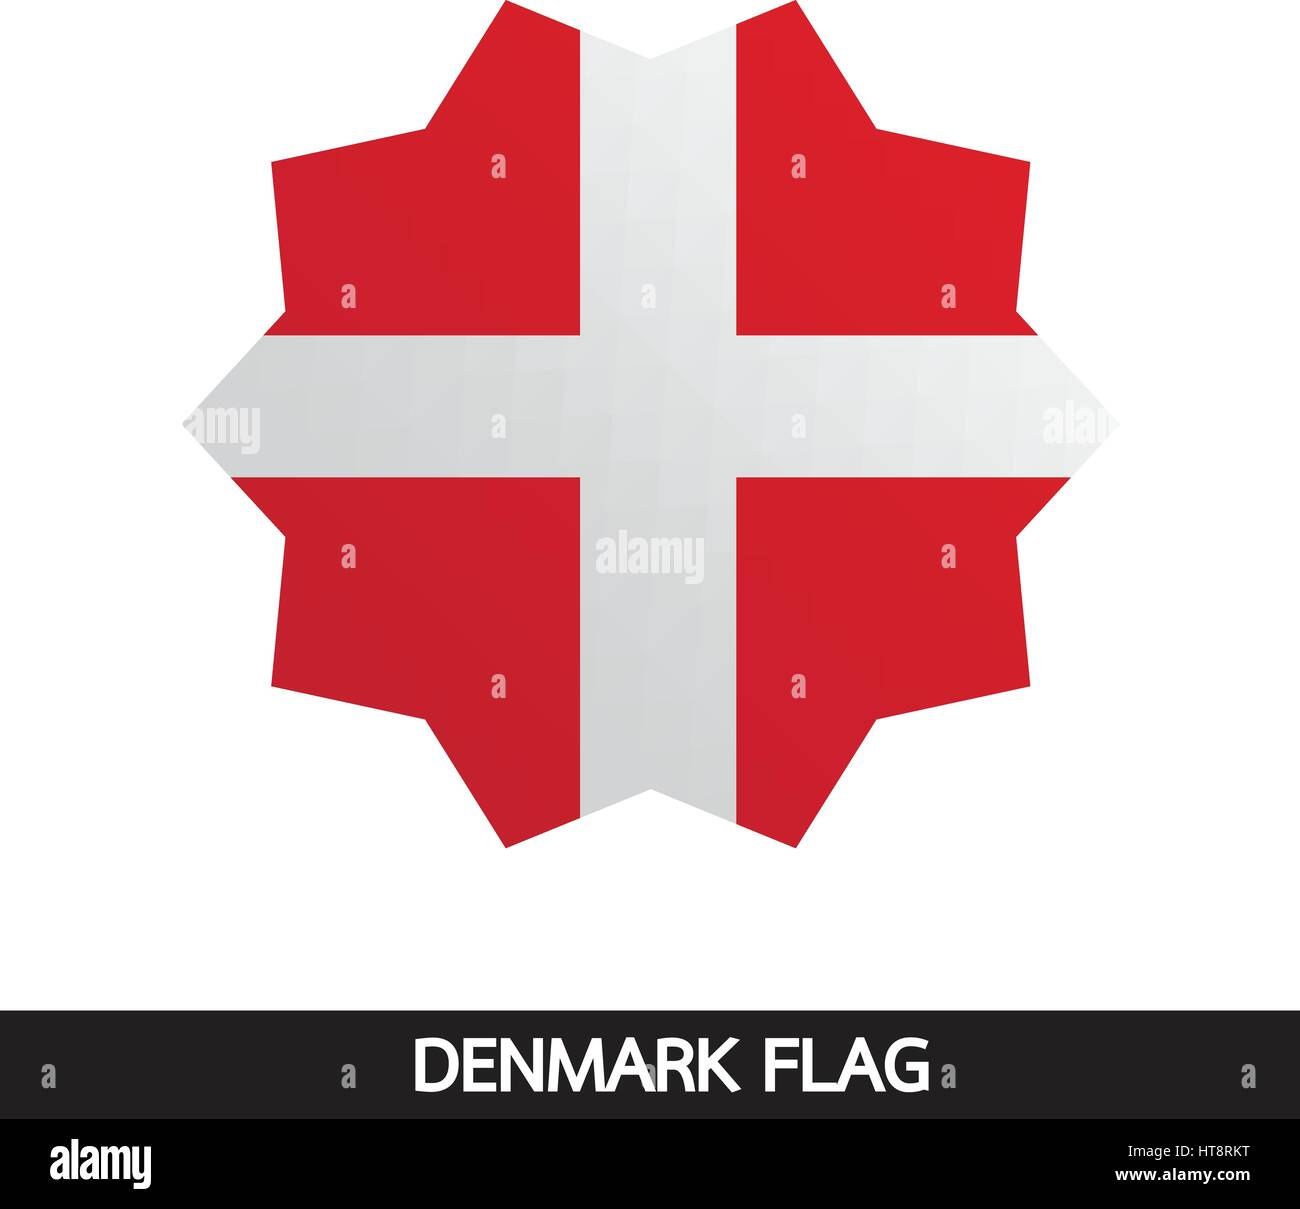 Denmark flag design illustration - Stock Image